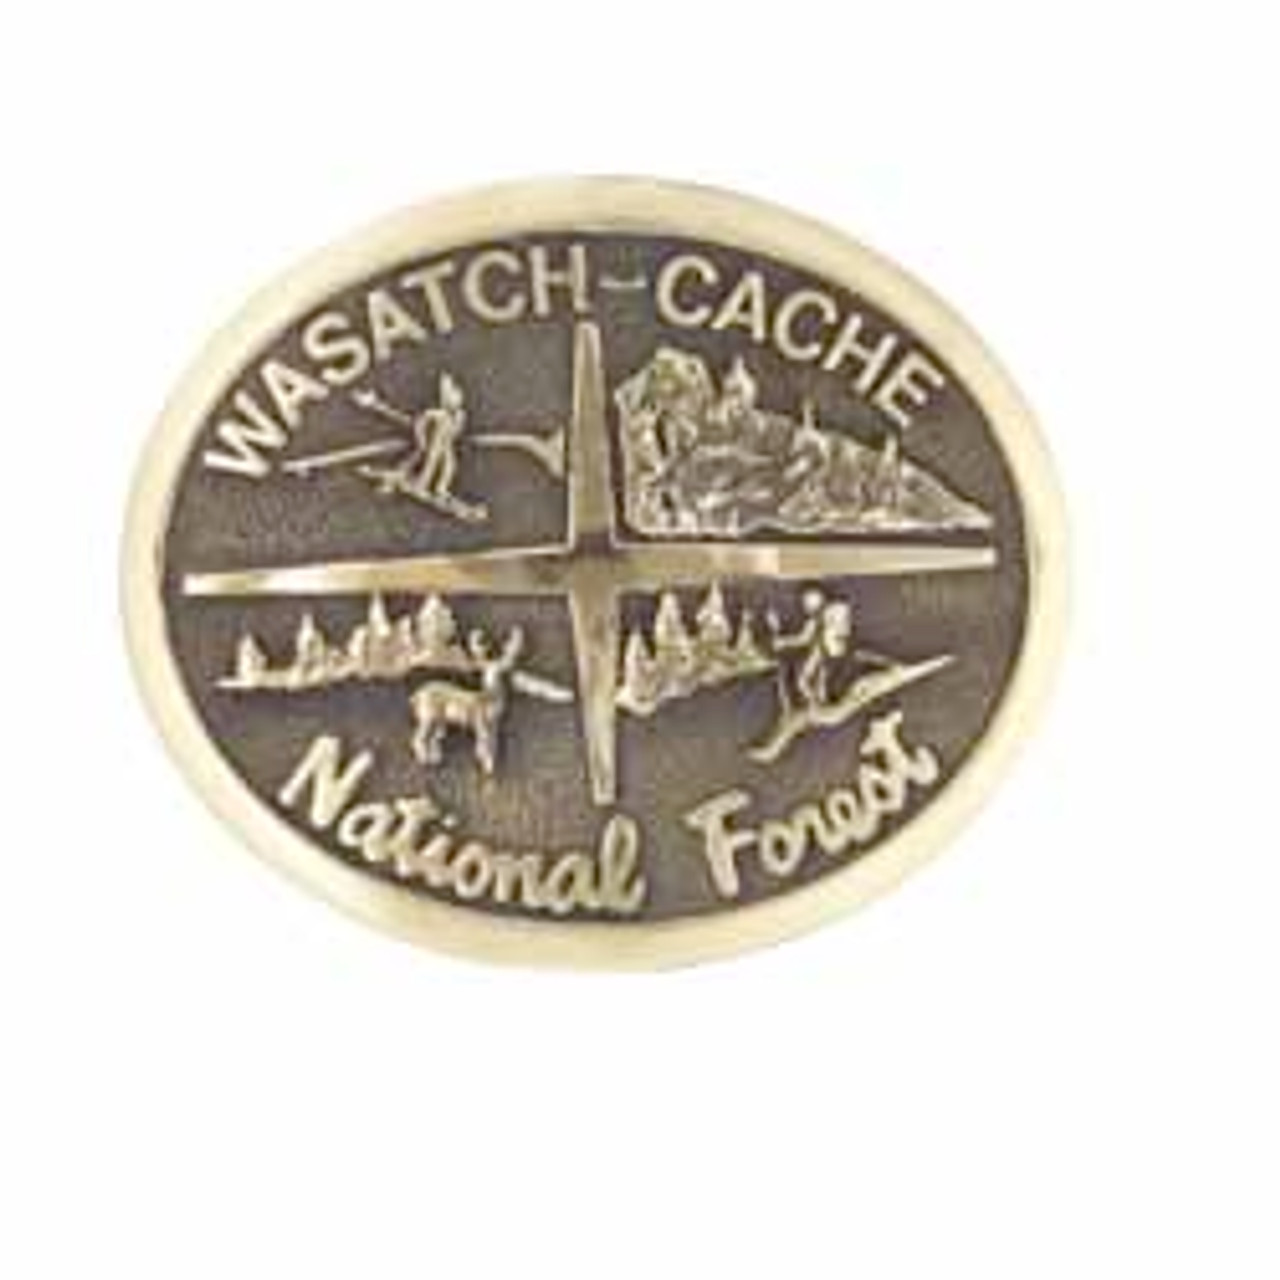 Wasatch-Cache National Forest Buckle